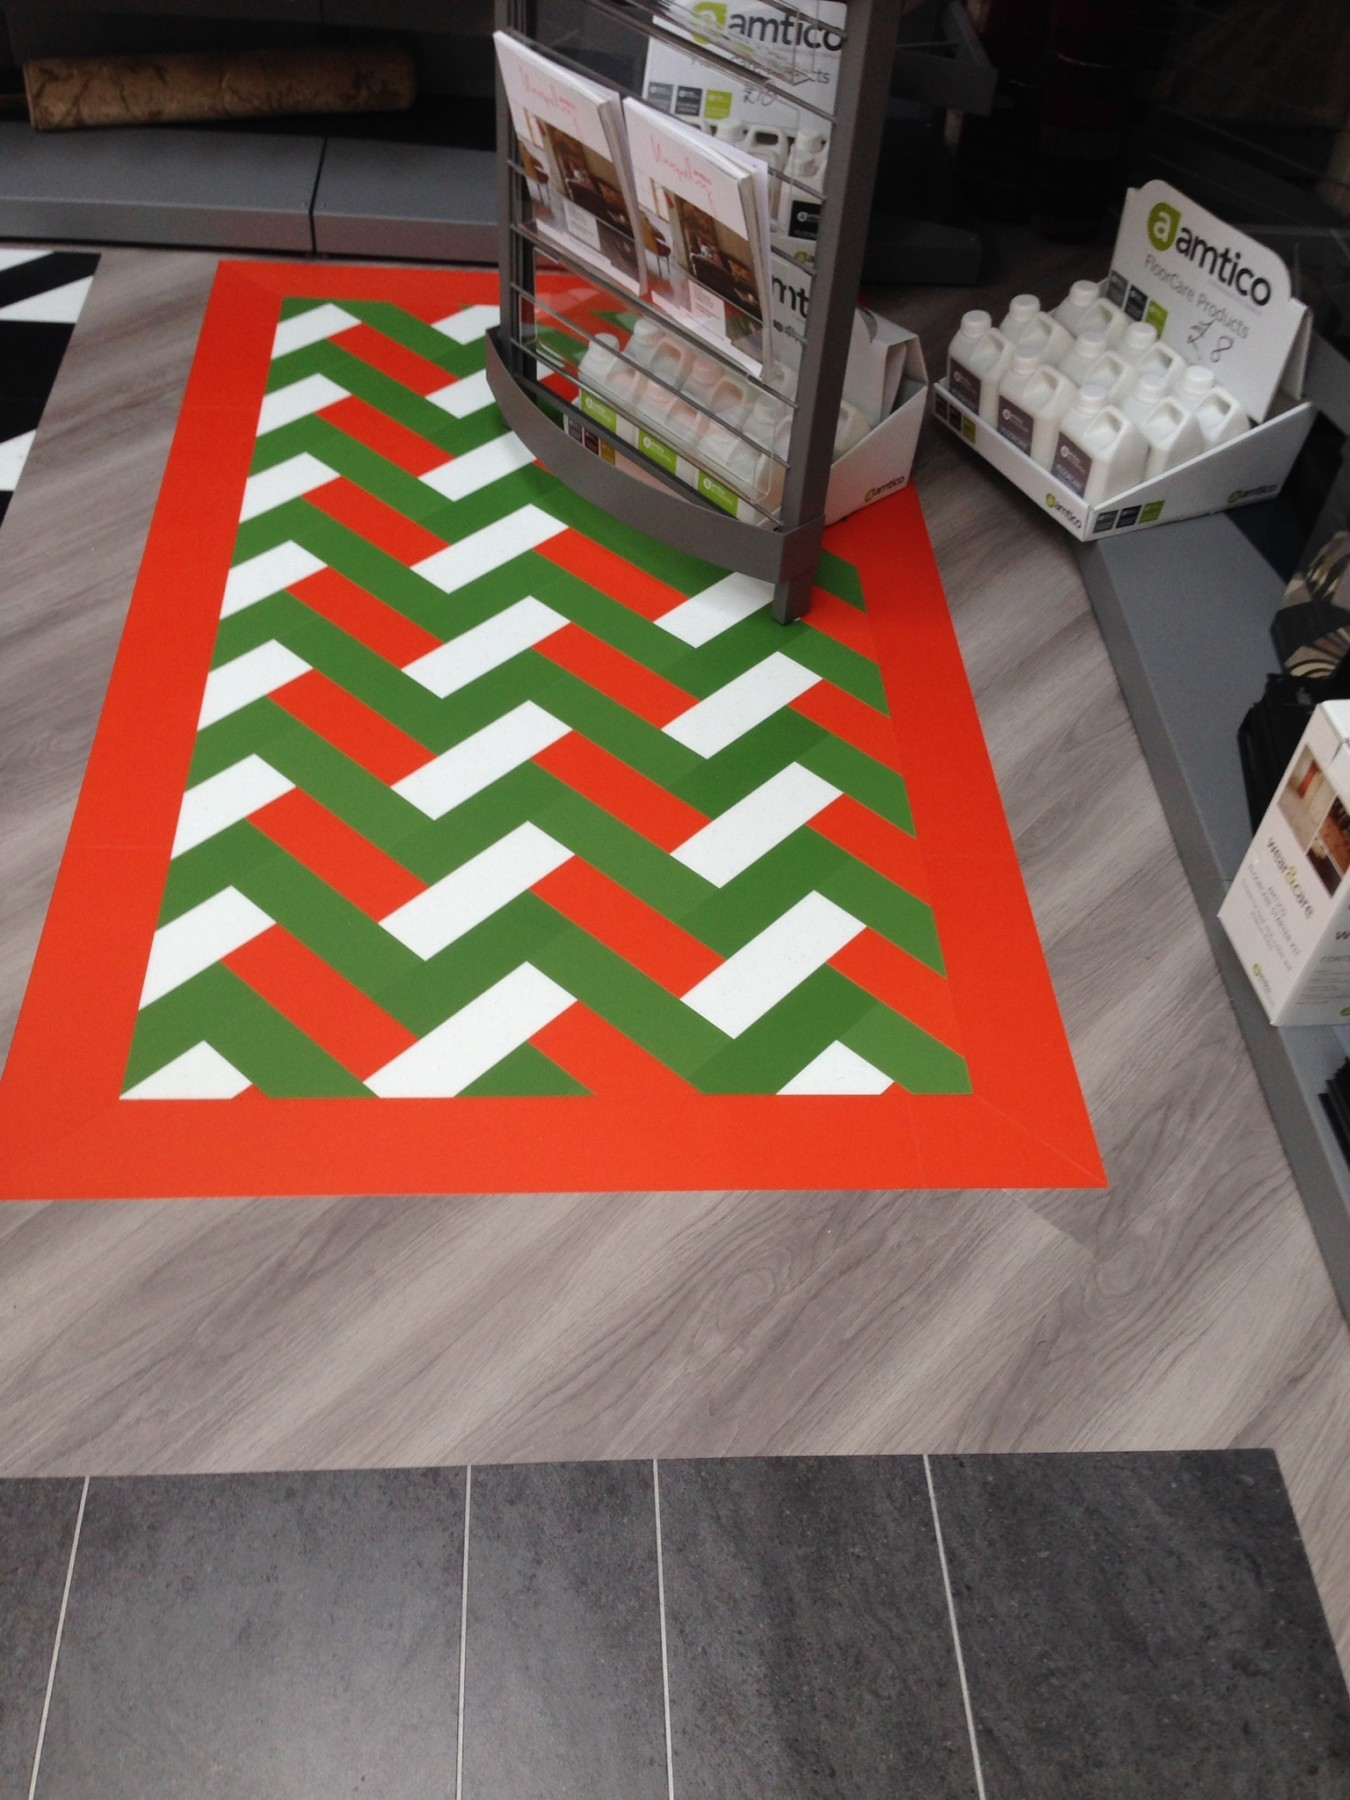 Grey flooring with a red white and green pattern